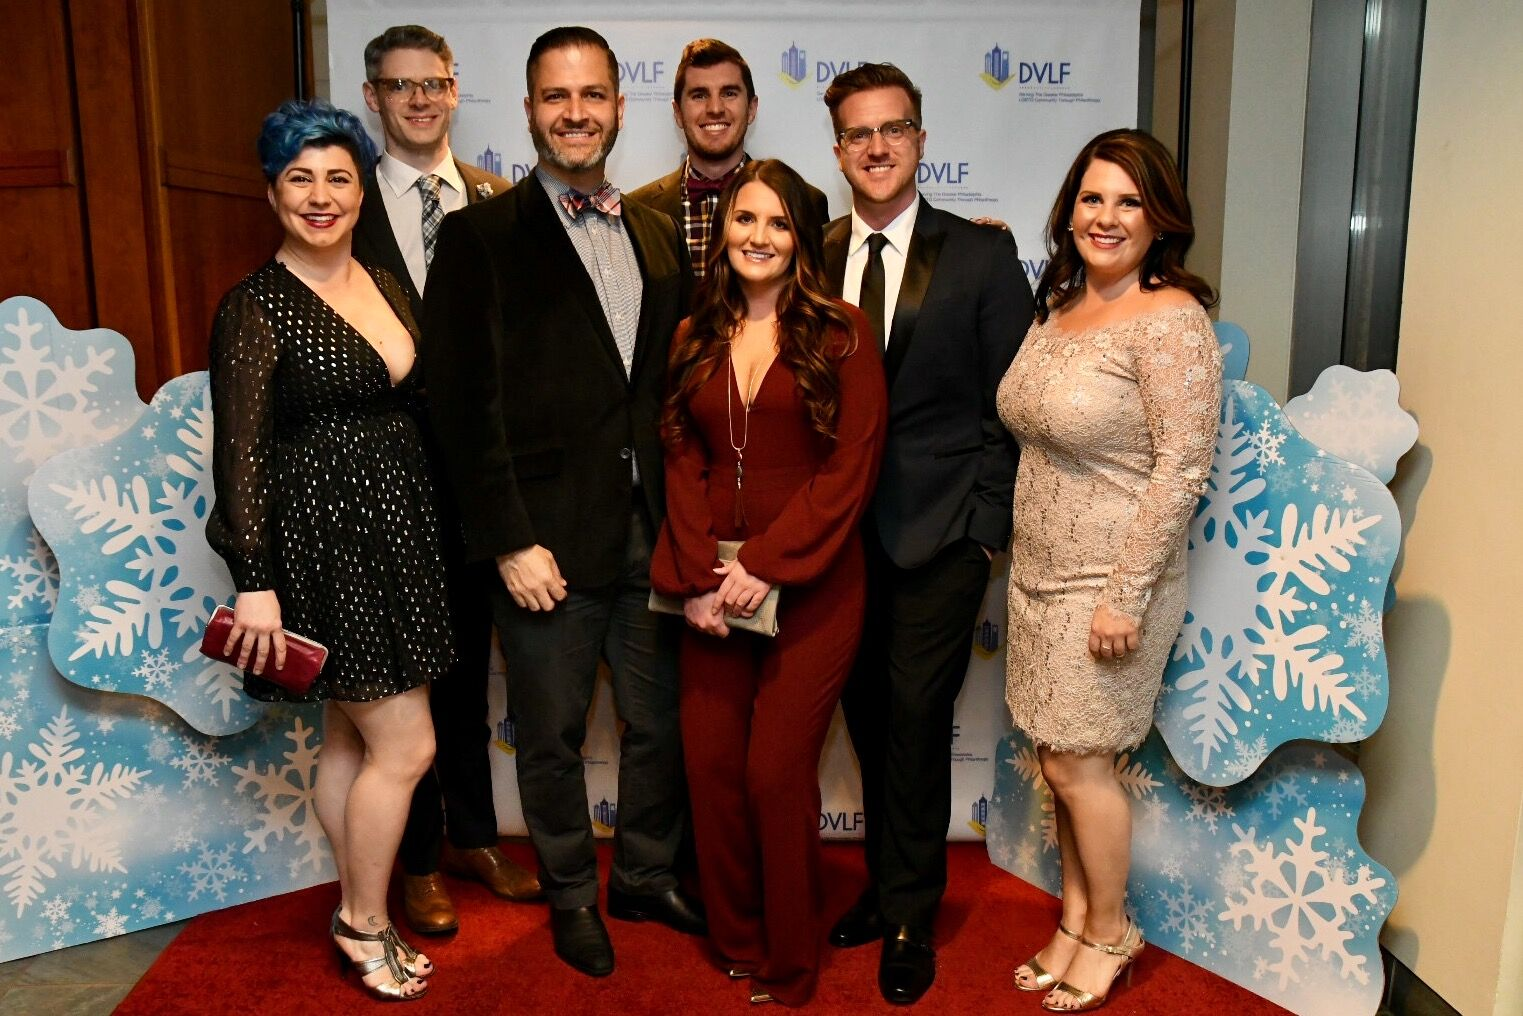 DVLF leadership at DVLF TOY 2016. Photography by Kelly Burkhardt.